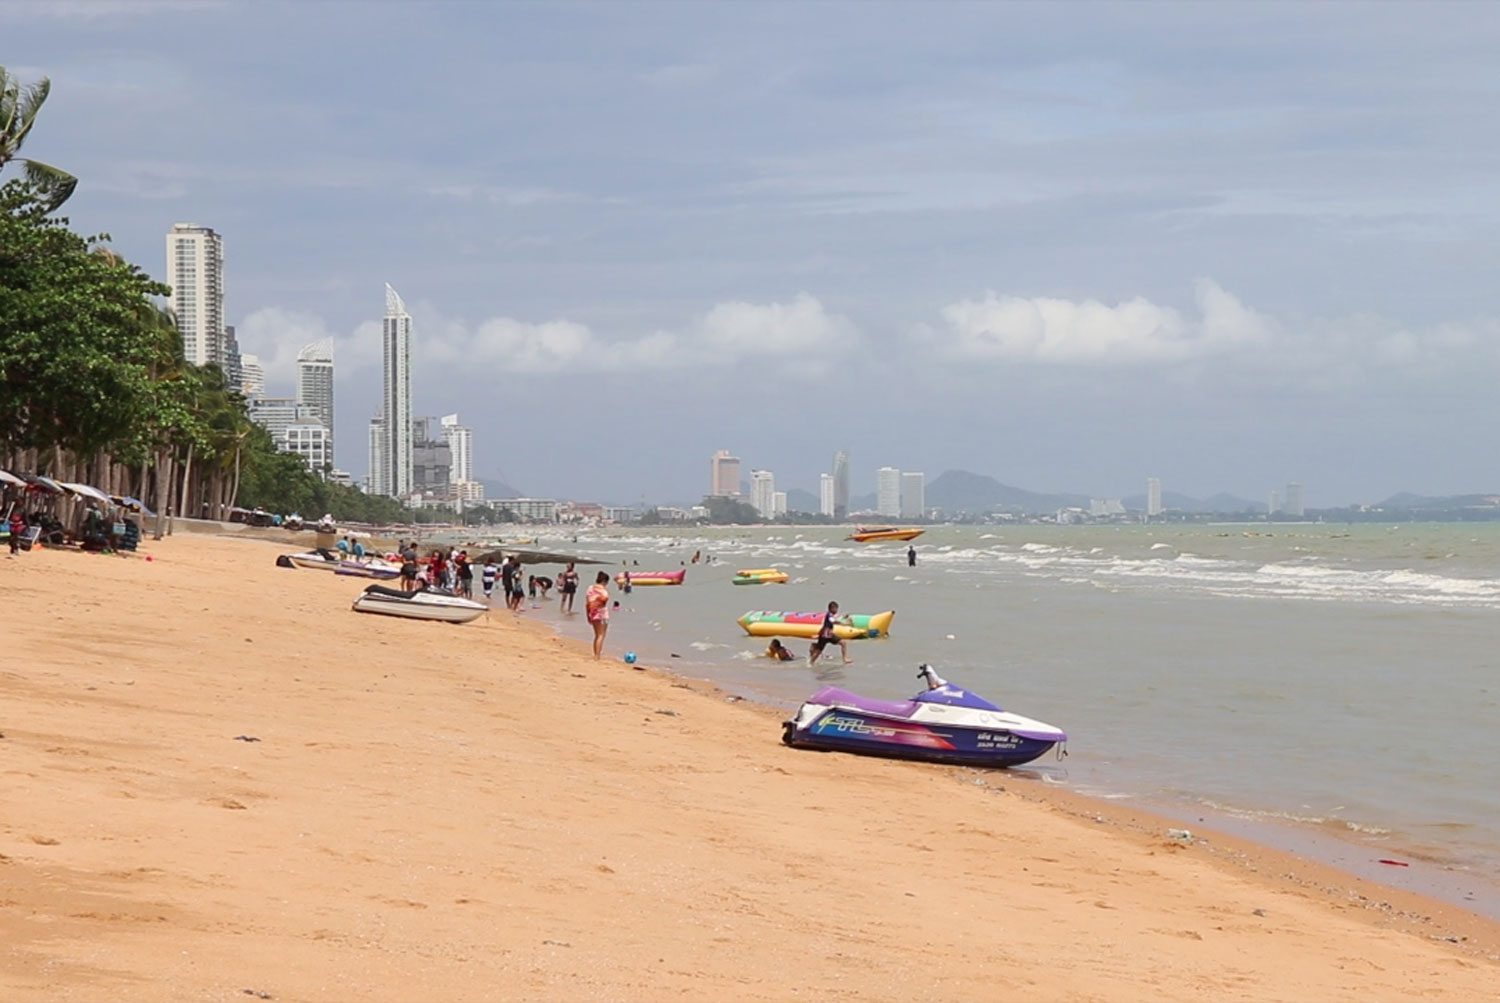 Crowds are thin at Pattaya beach on Saturday despite promotions intended to get people in the mood to travel after weeks of restrictions. (Photo: Chaiyot Pupattanapong)